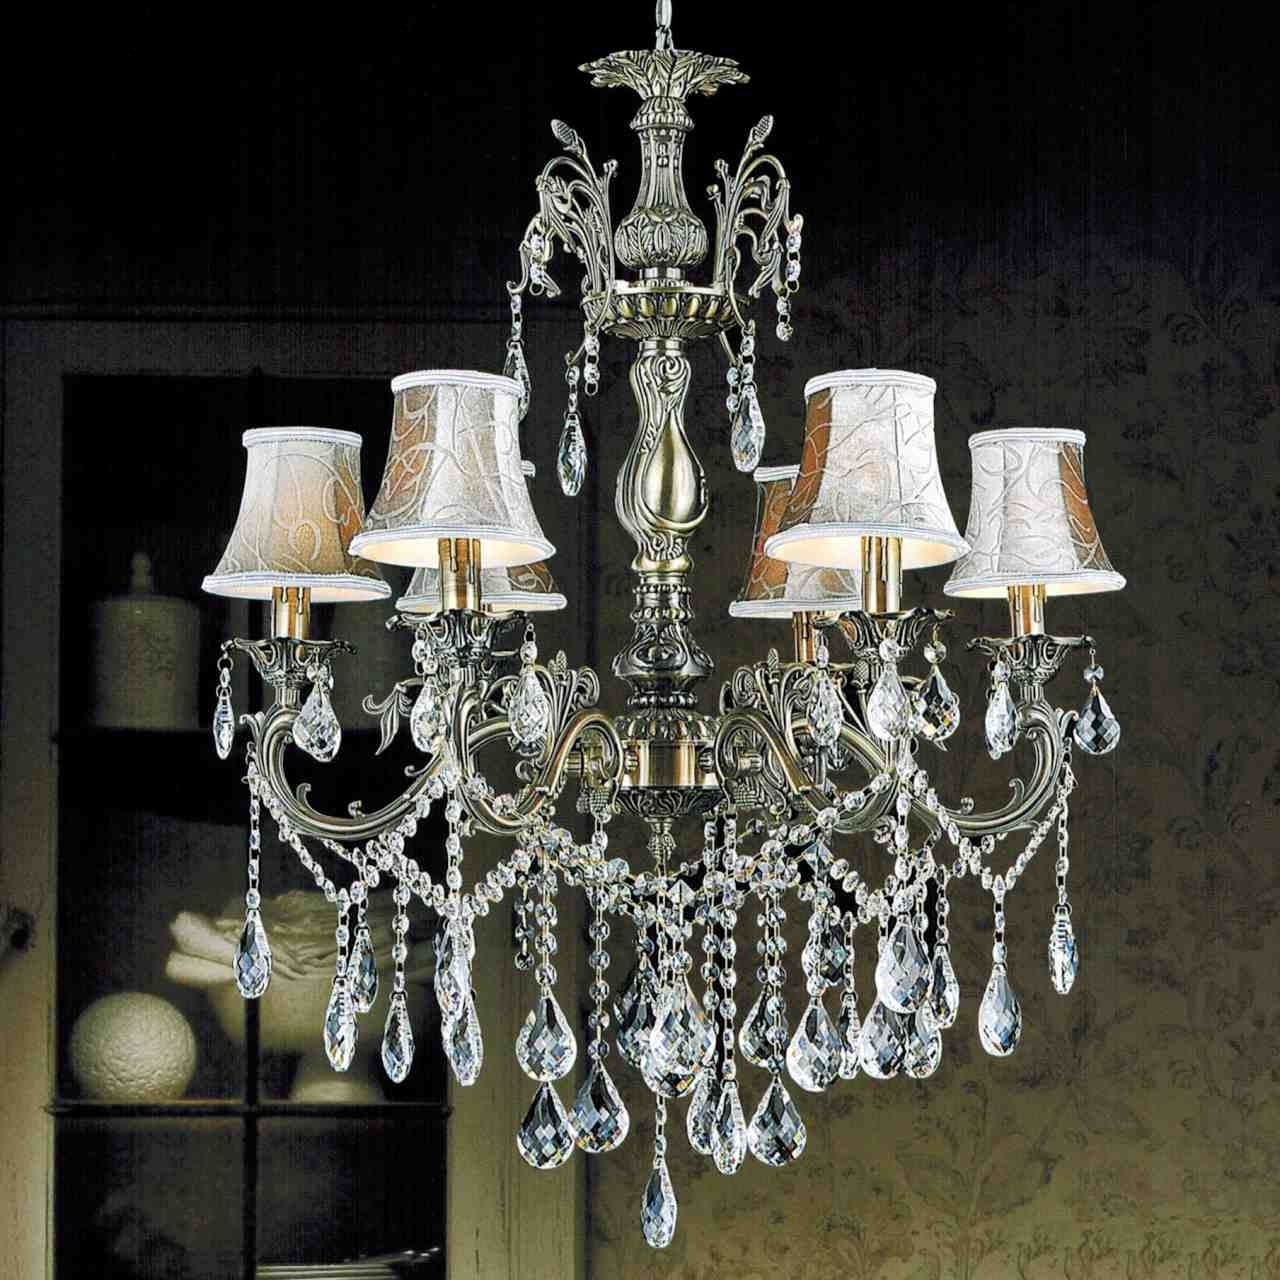 Fashionable Brizzo Lighting Stores (View 2 of 15)